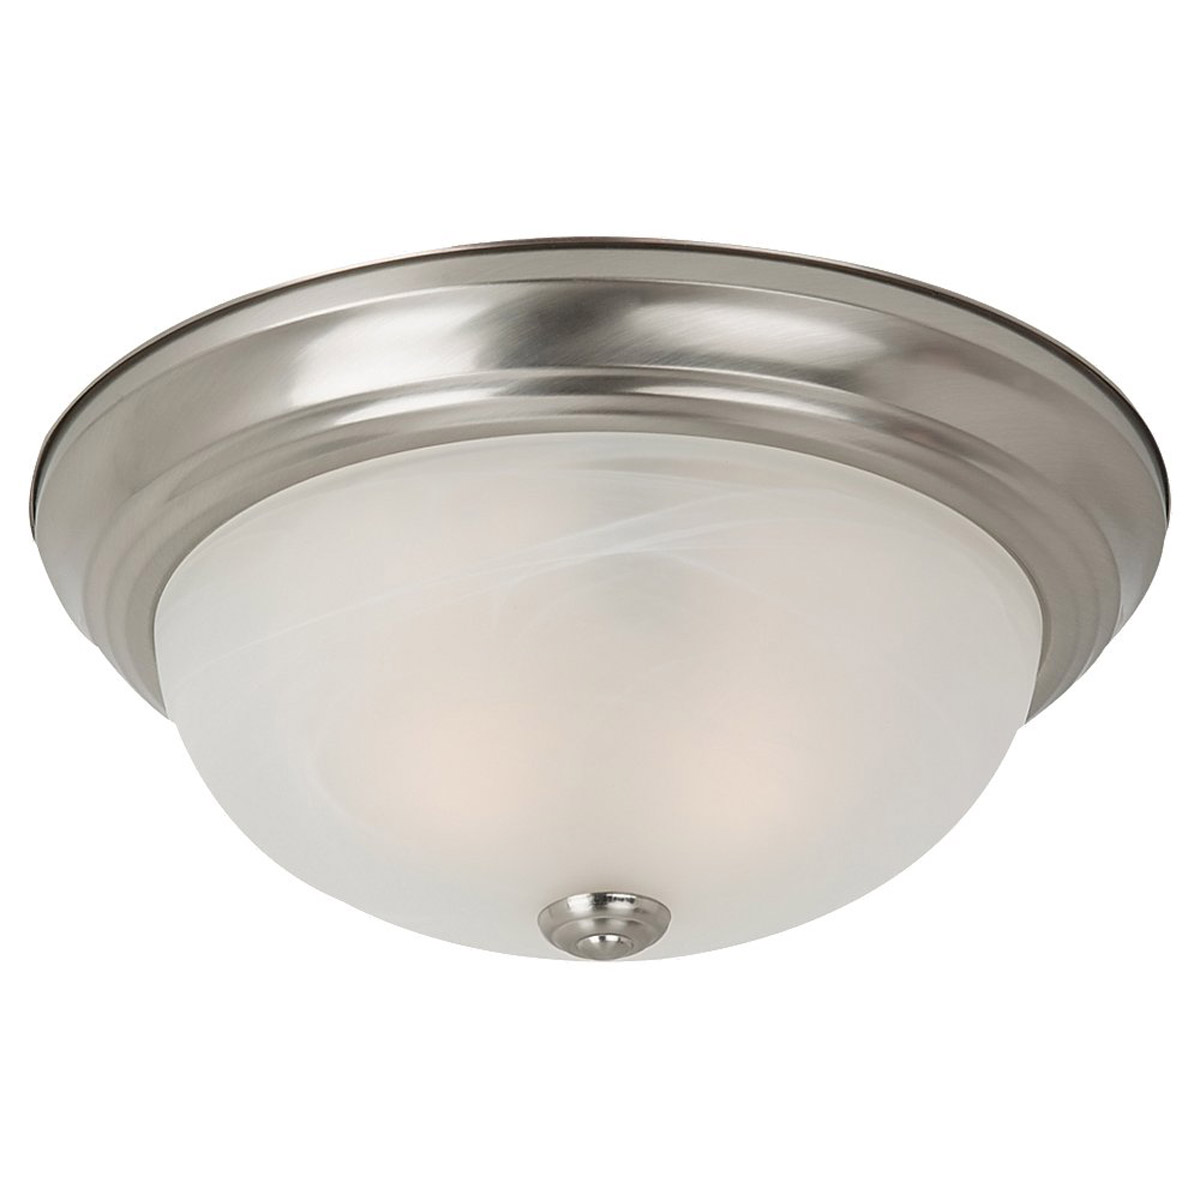 Sea Gull Lighting Windgate 3 Light Flush Mount in Brushed Nickel 75943BLE-962